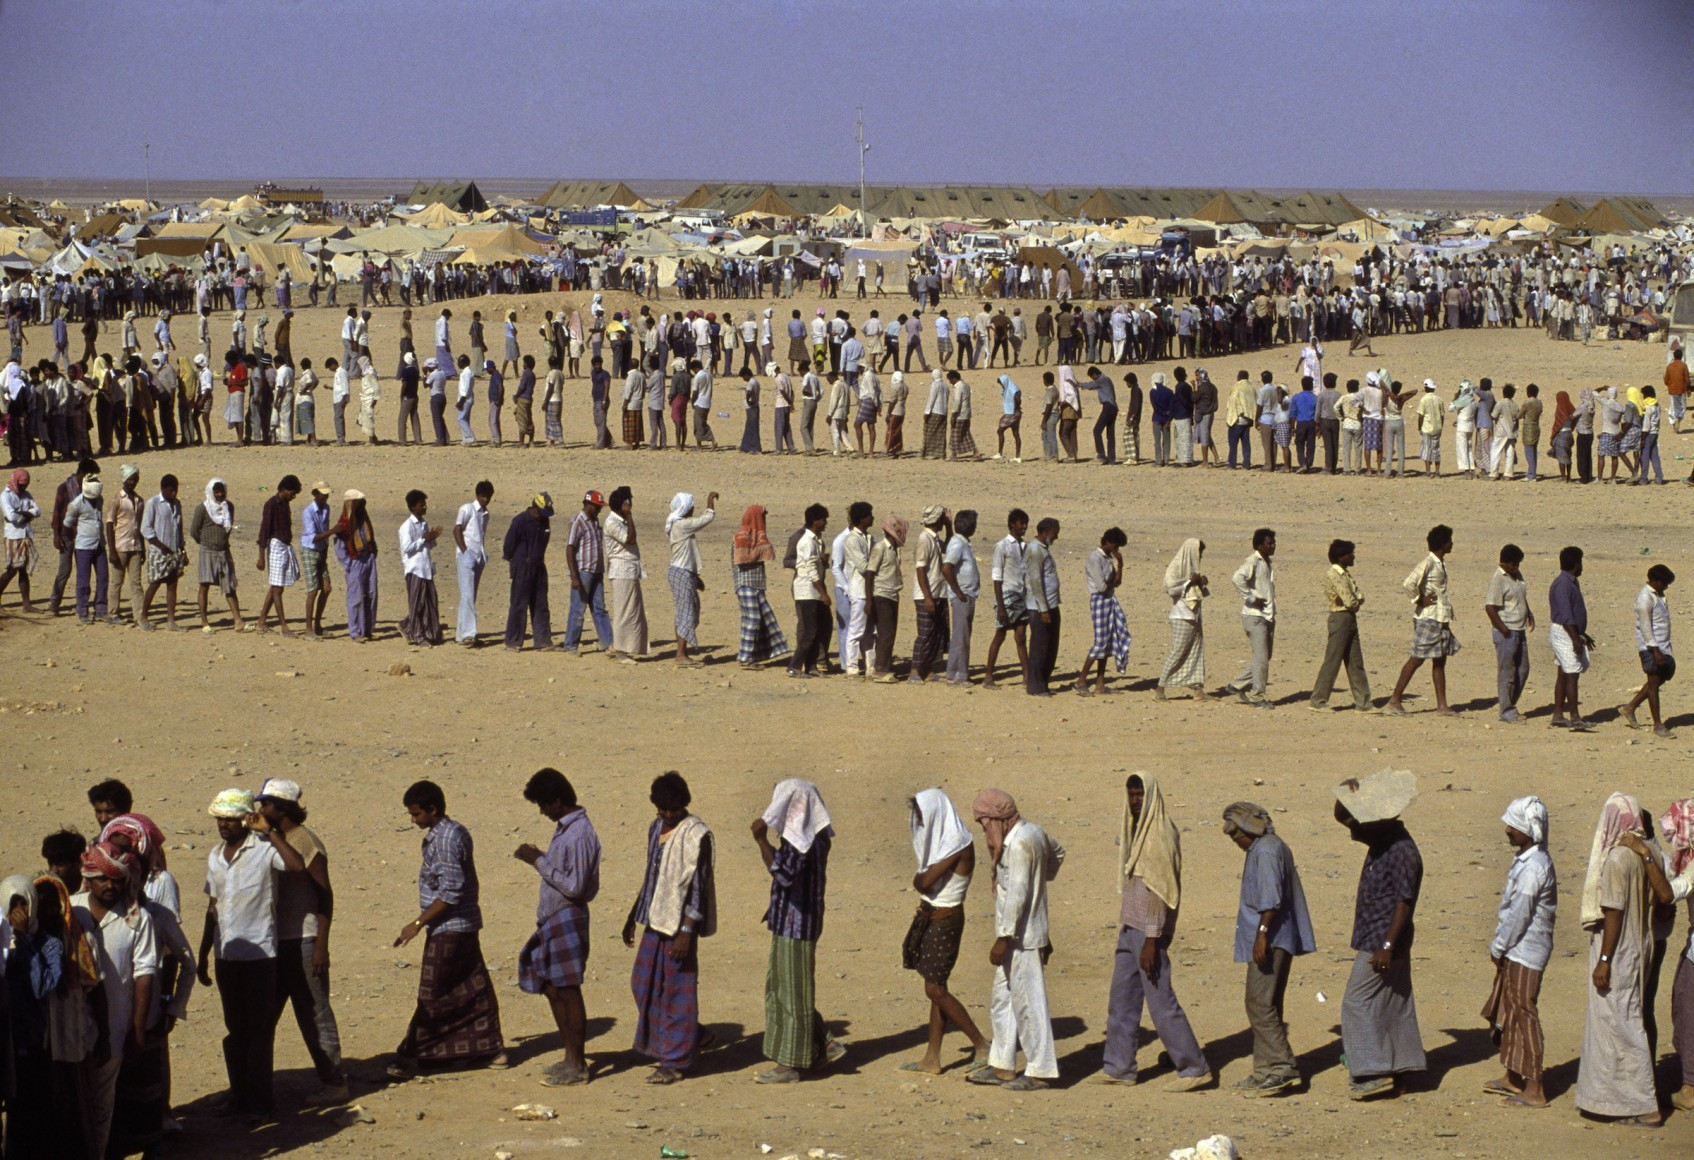 Refugees in the desert.  Jordan, 1990